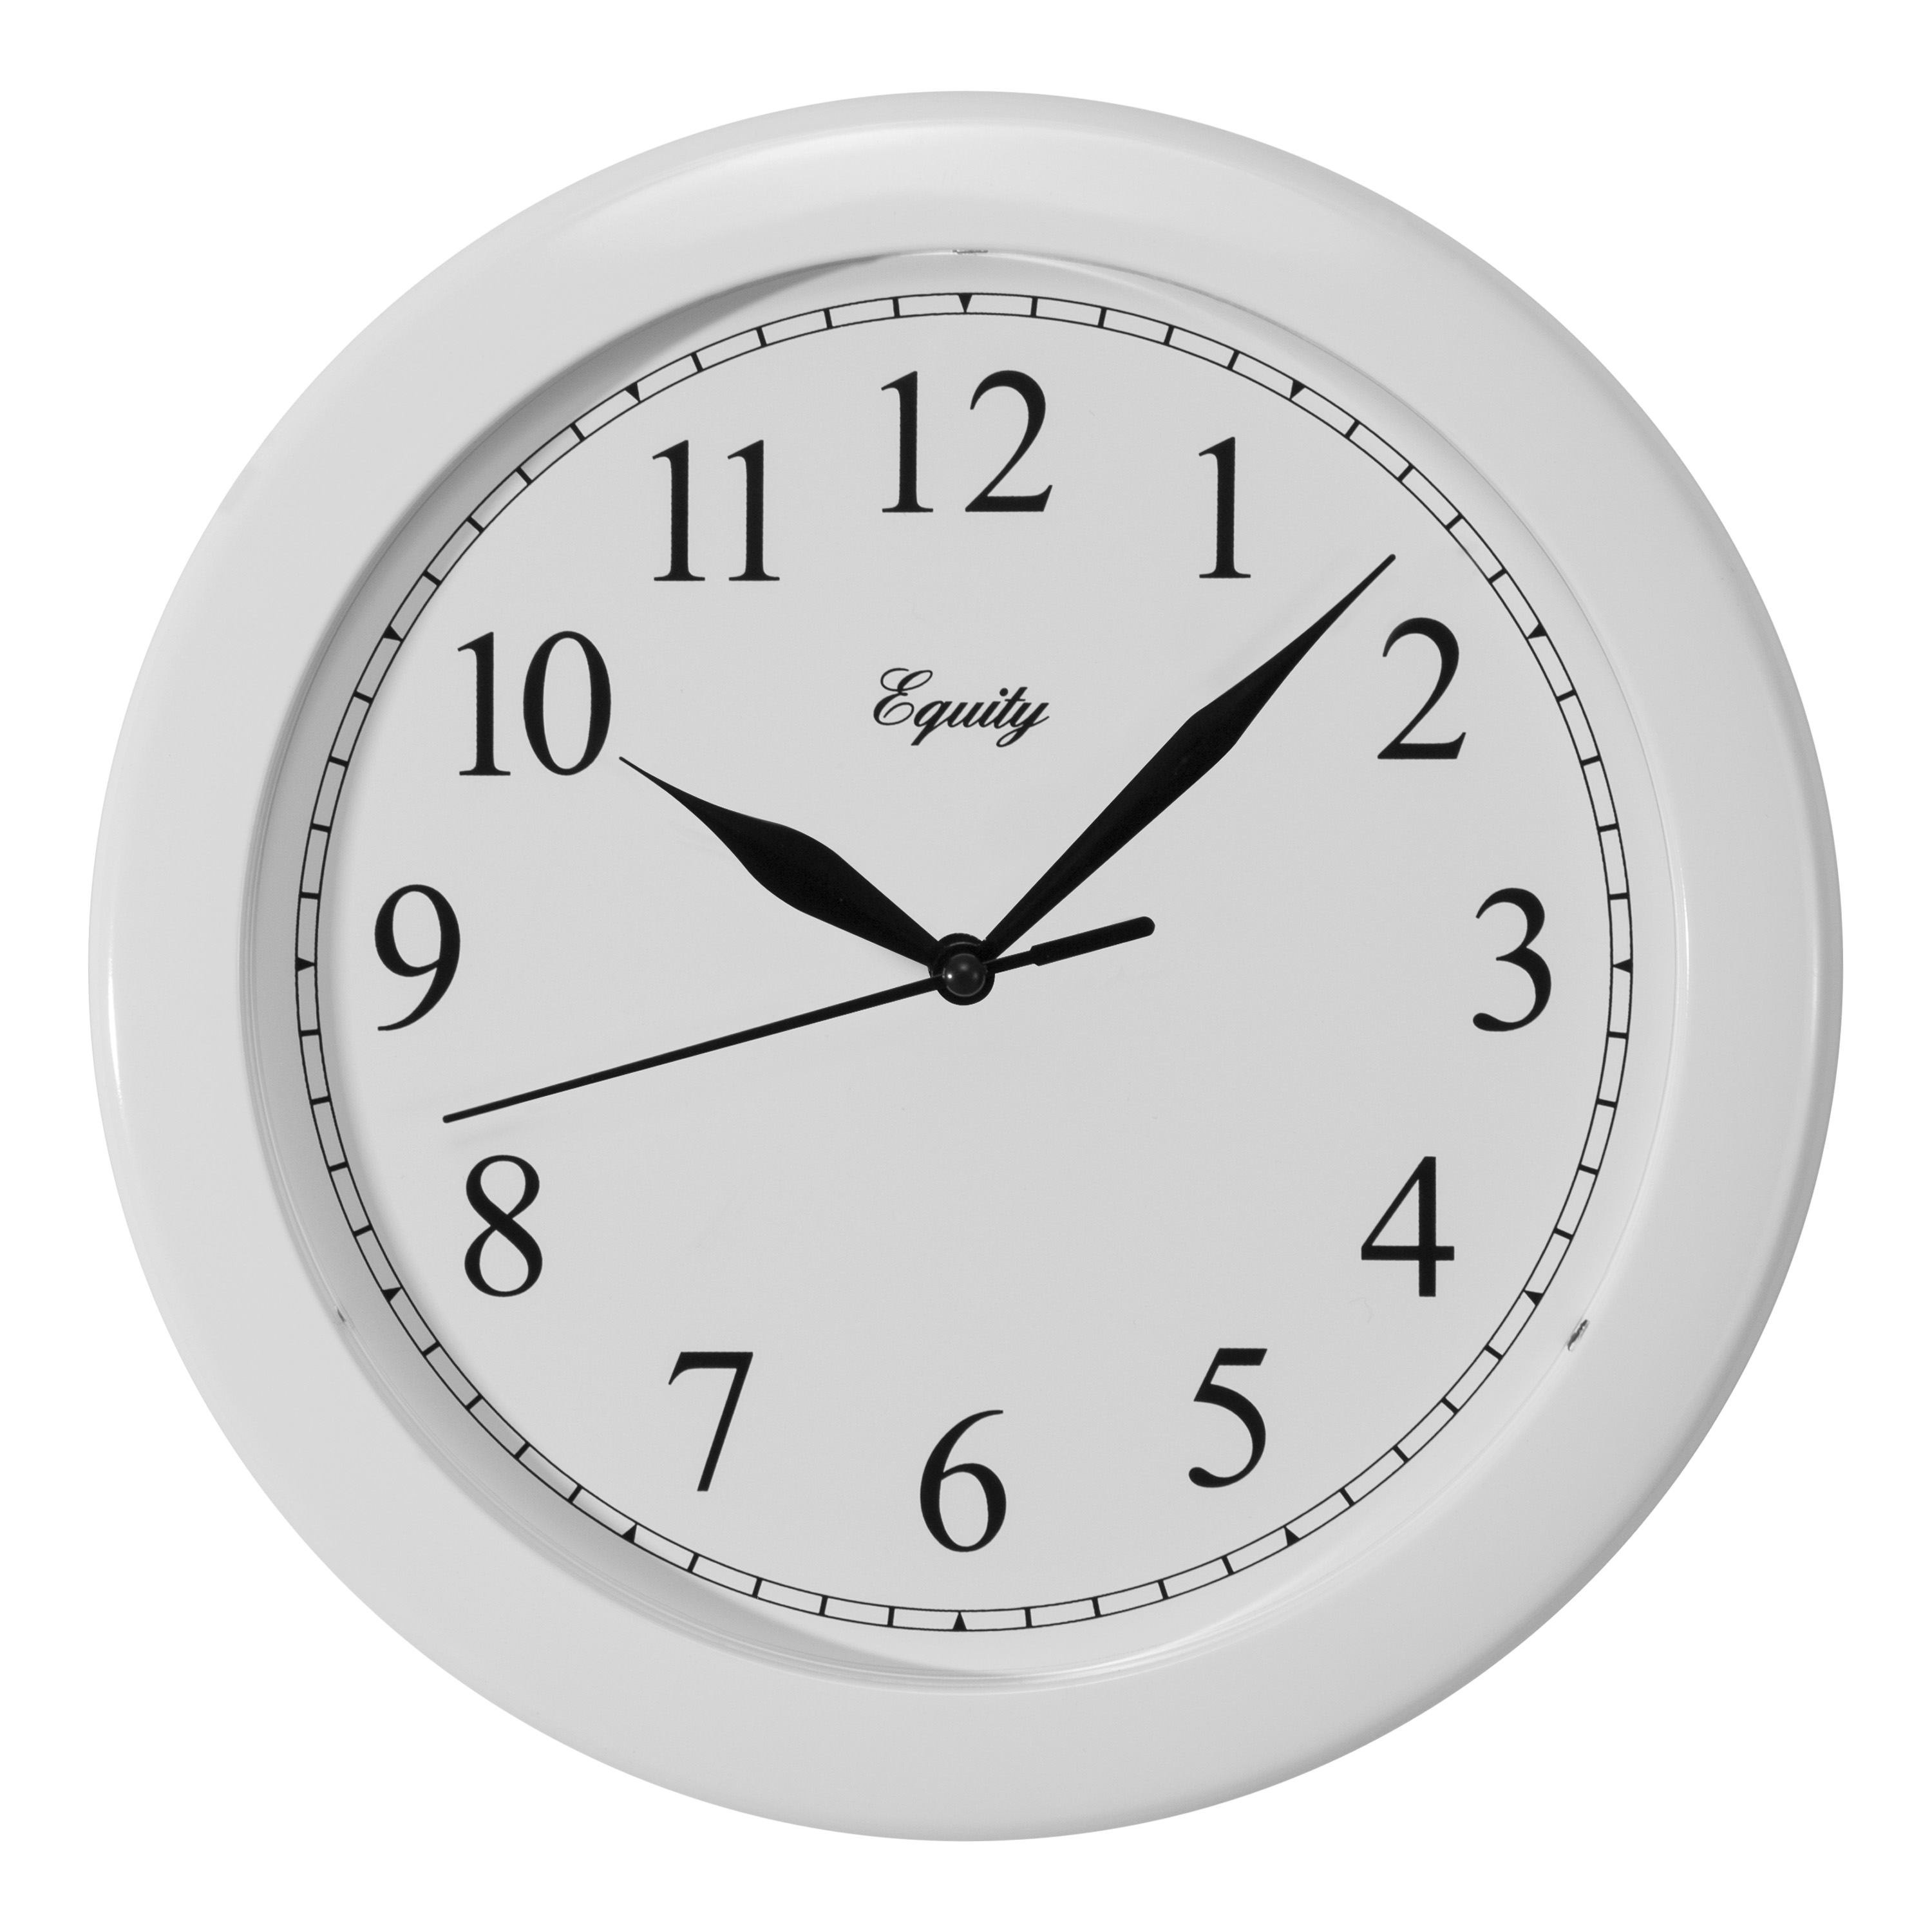 Equity by La Crosse 25201 10 Inch White Wall Clock